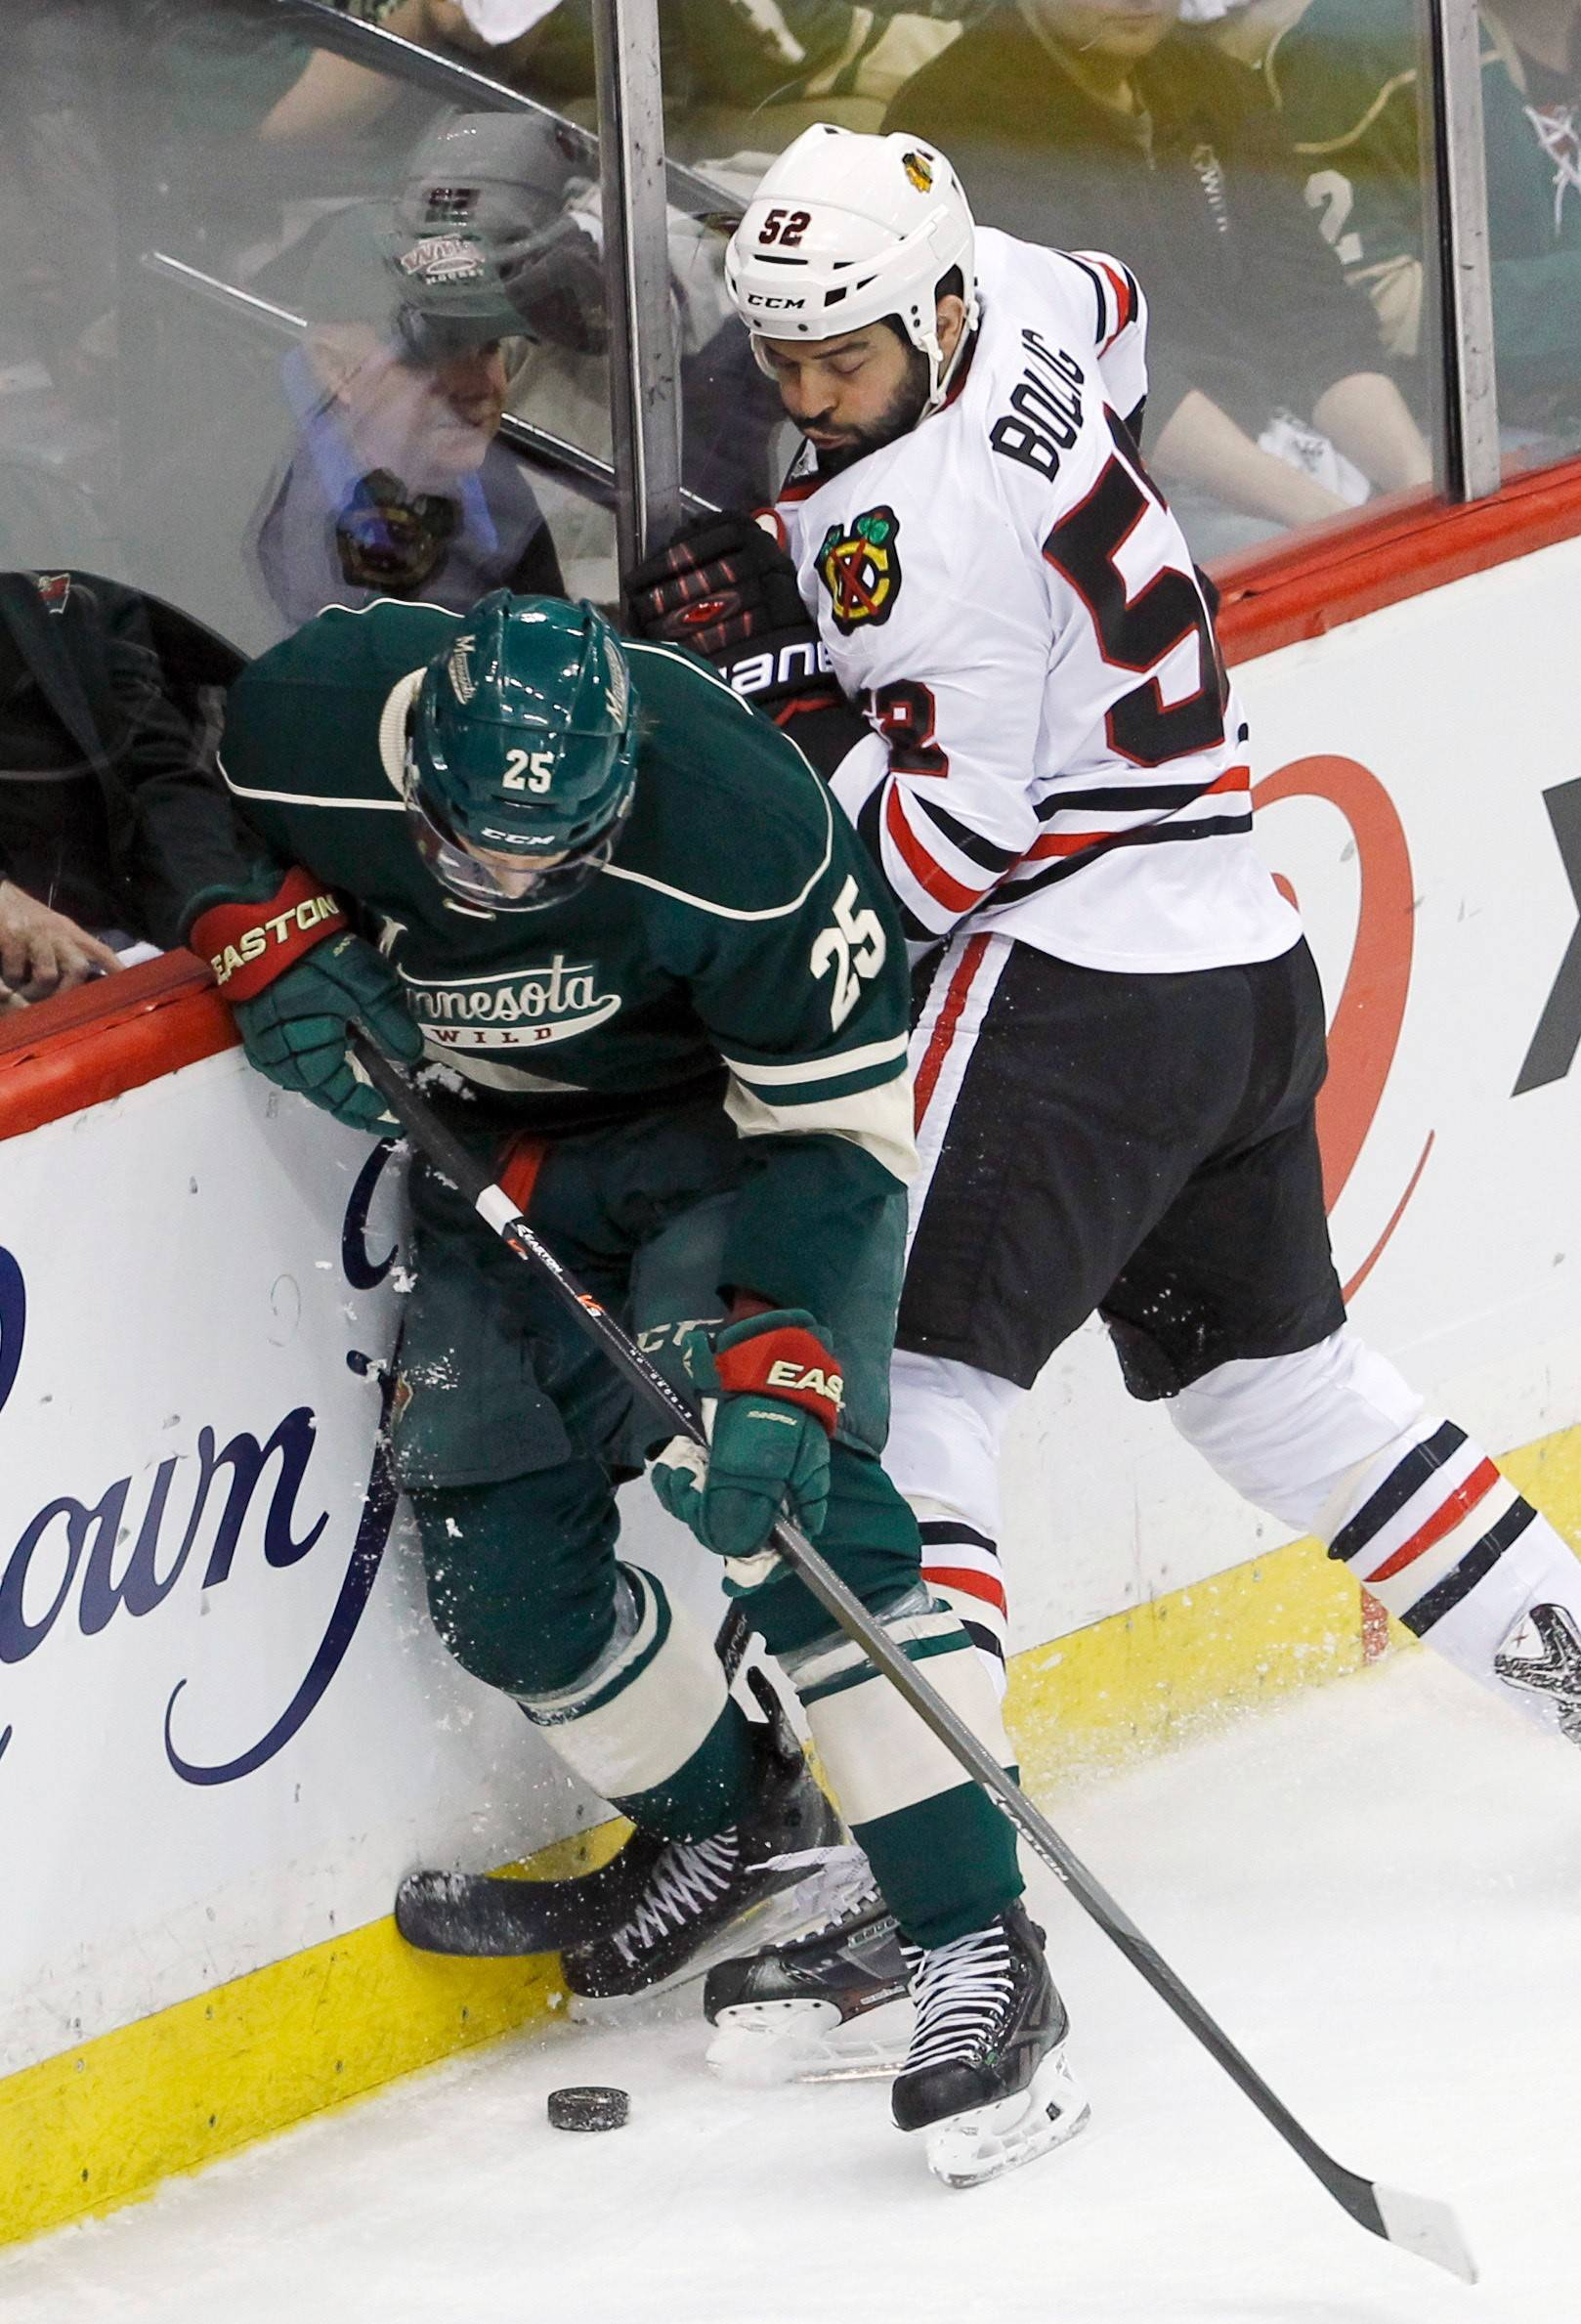 Minnesota Wild defenseman Jonas Brodin (25) and Chicago Blackhawks left wing Brandon Bollig (52) battle for the puck during the first period of Game 3 of an NHL hockey second-round playoff series in St. Paul, Minn., Tuesday, May 6, 2014.